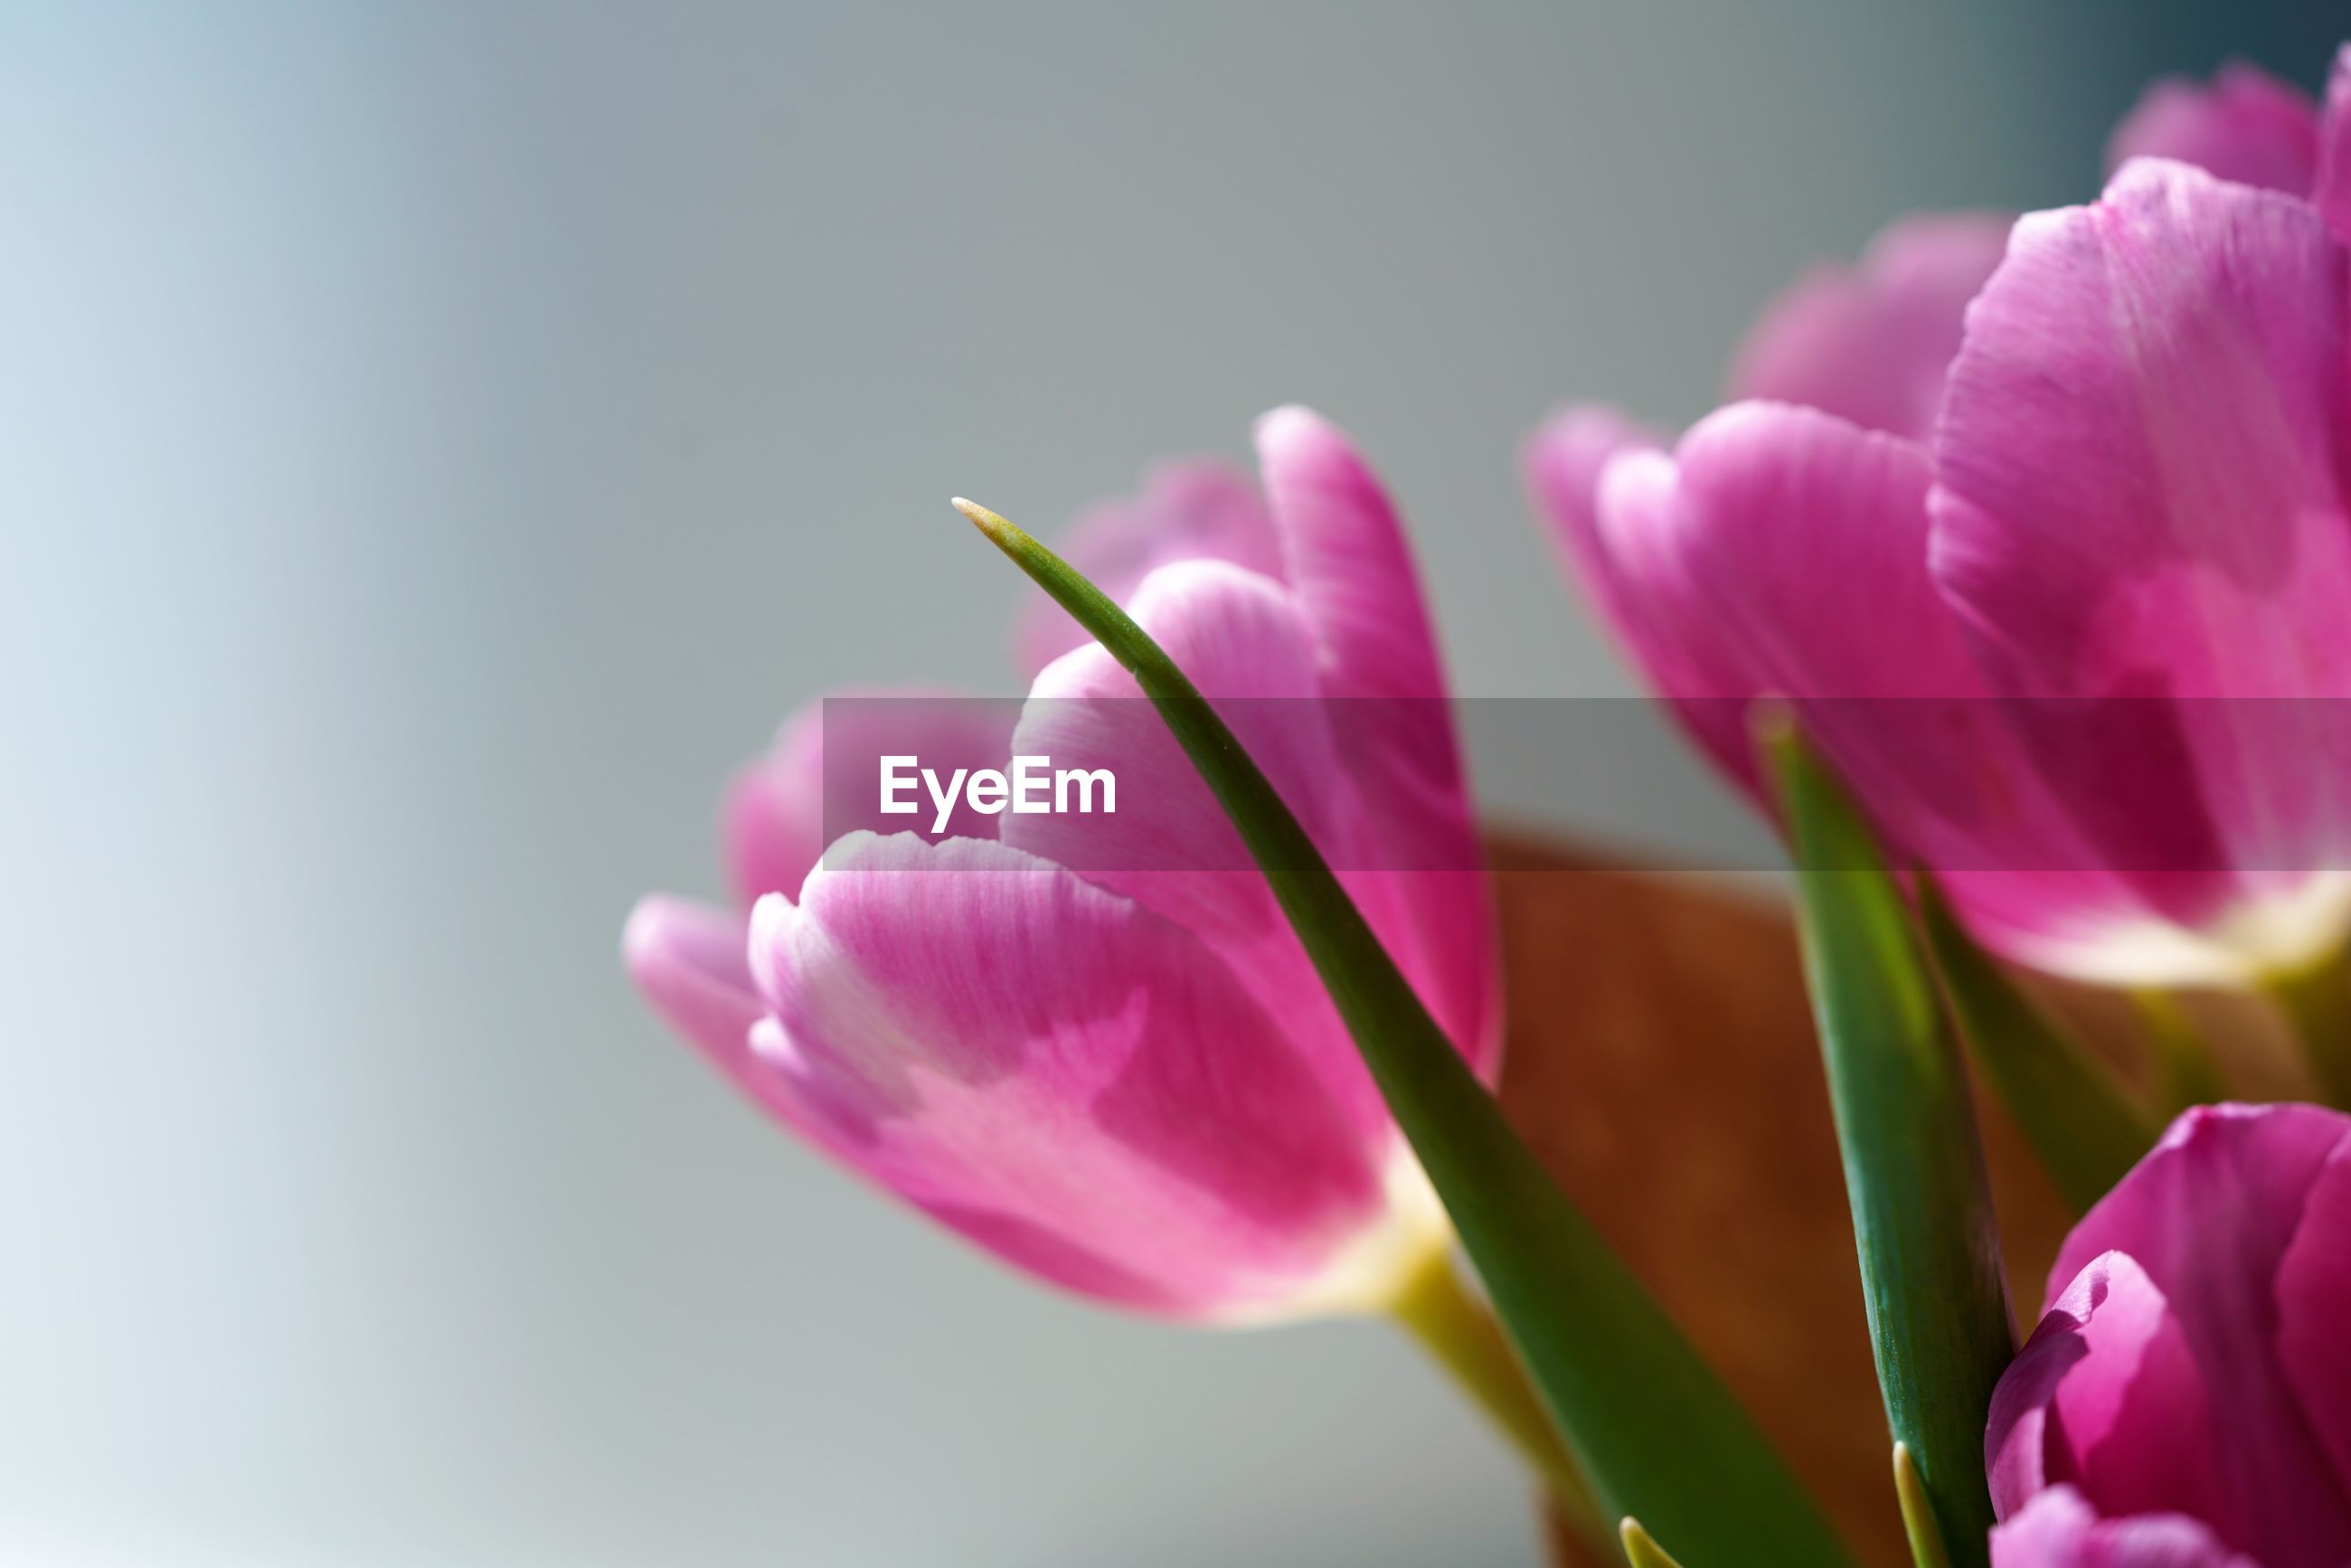 Macro view on violet petals of spring bouquet of tulips by blurred background